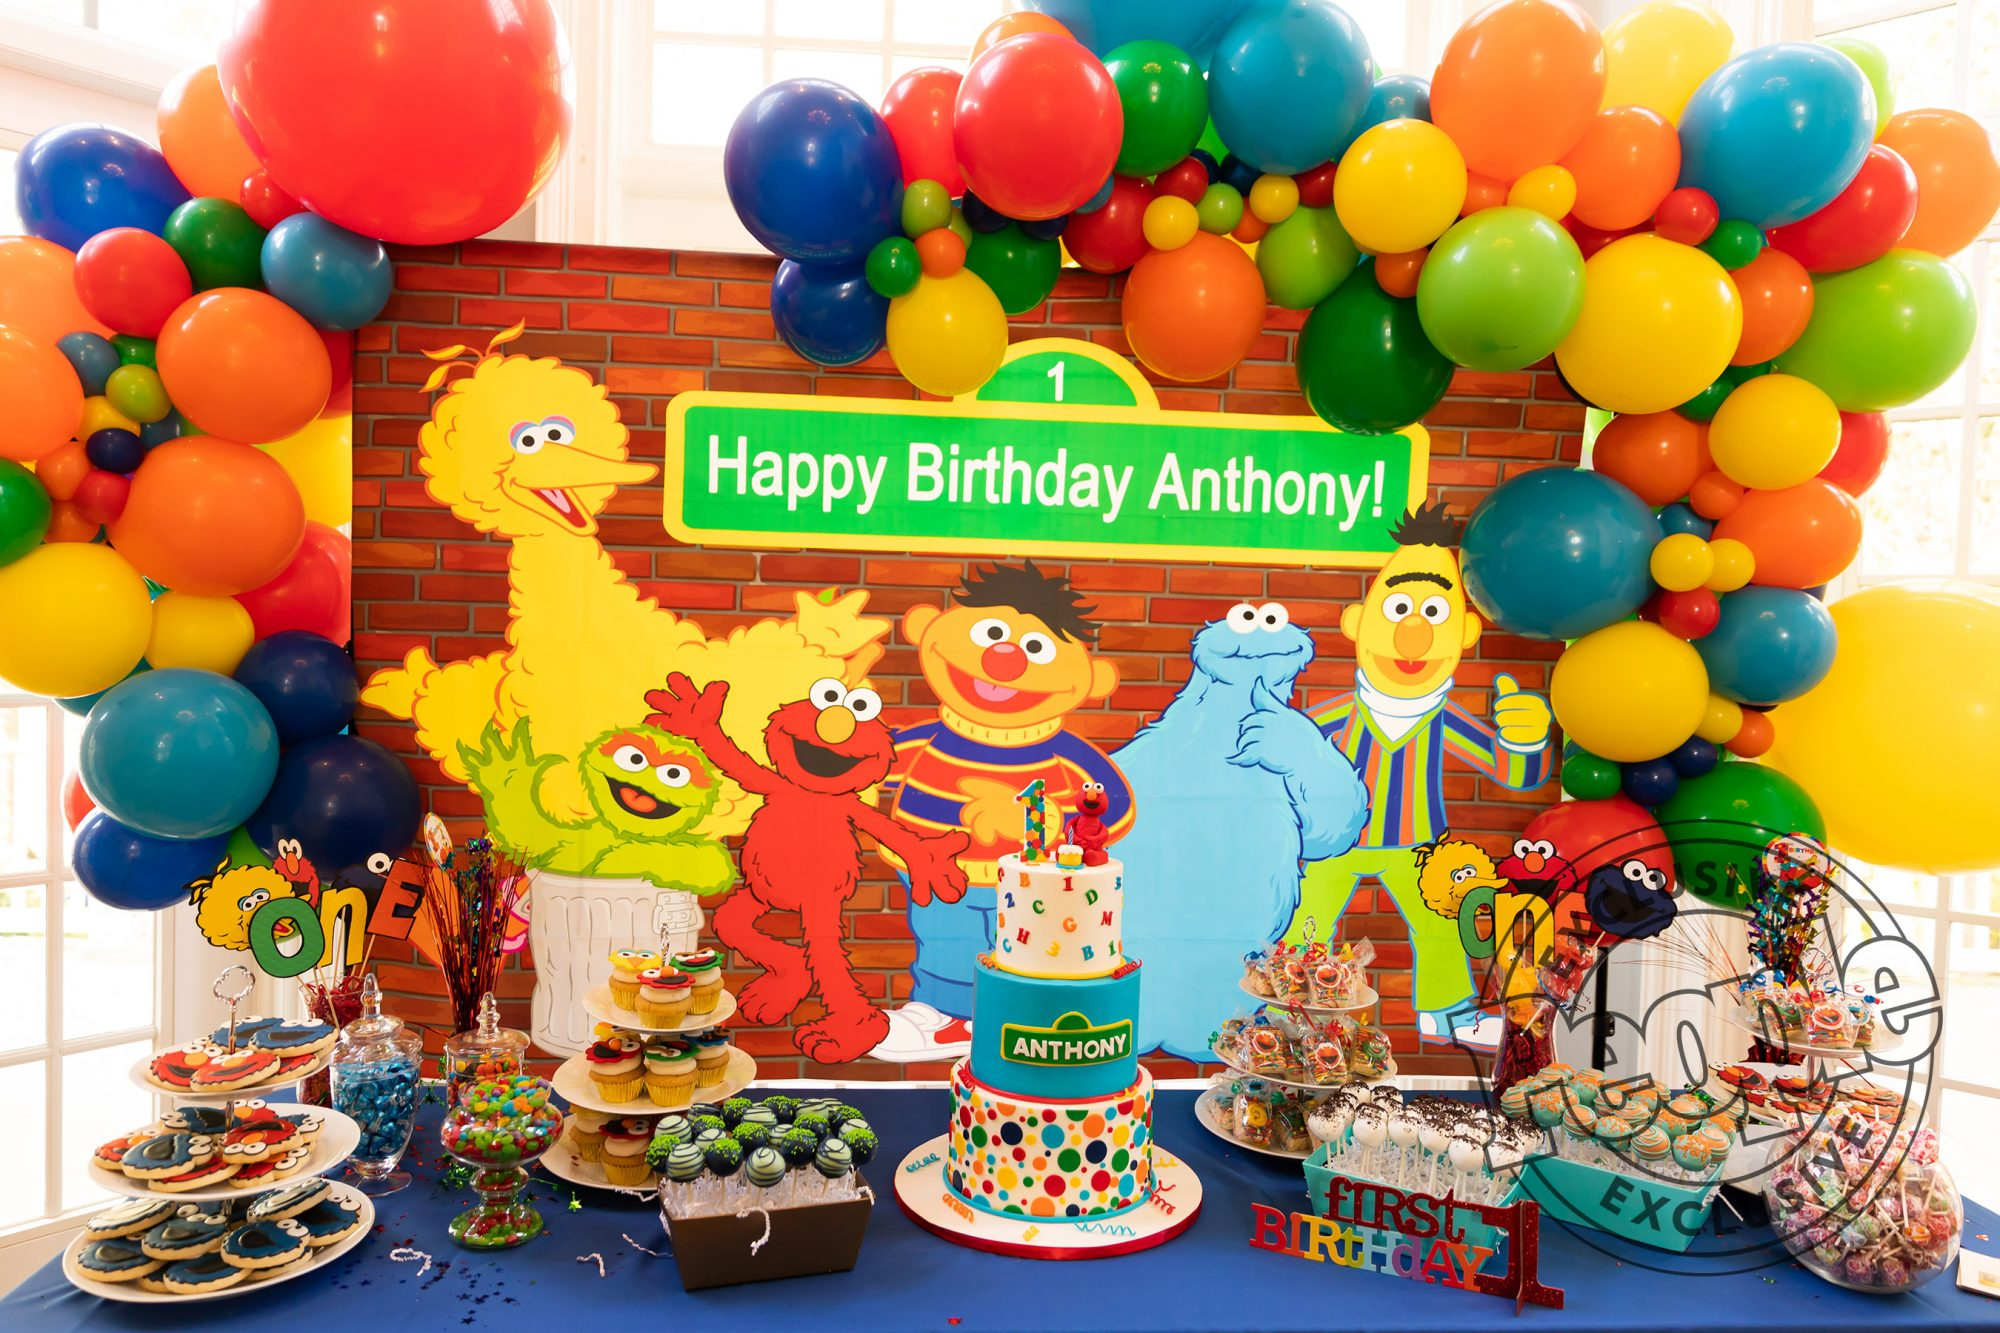 Jaclyn Stapp - Anthony's First BirthdayCredit: Tanya Mack